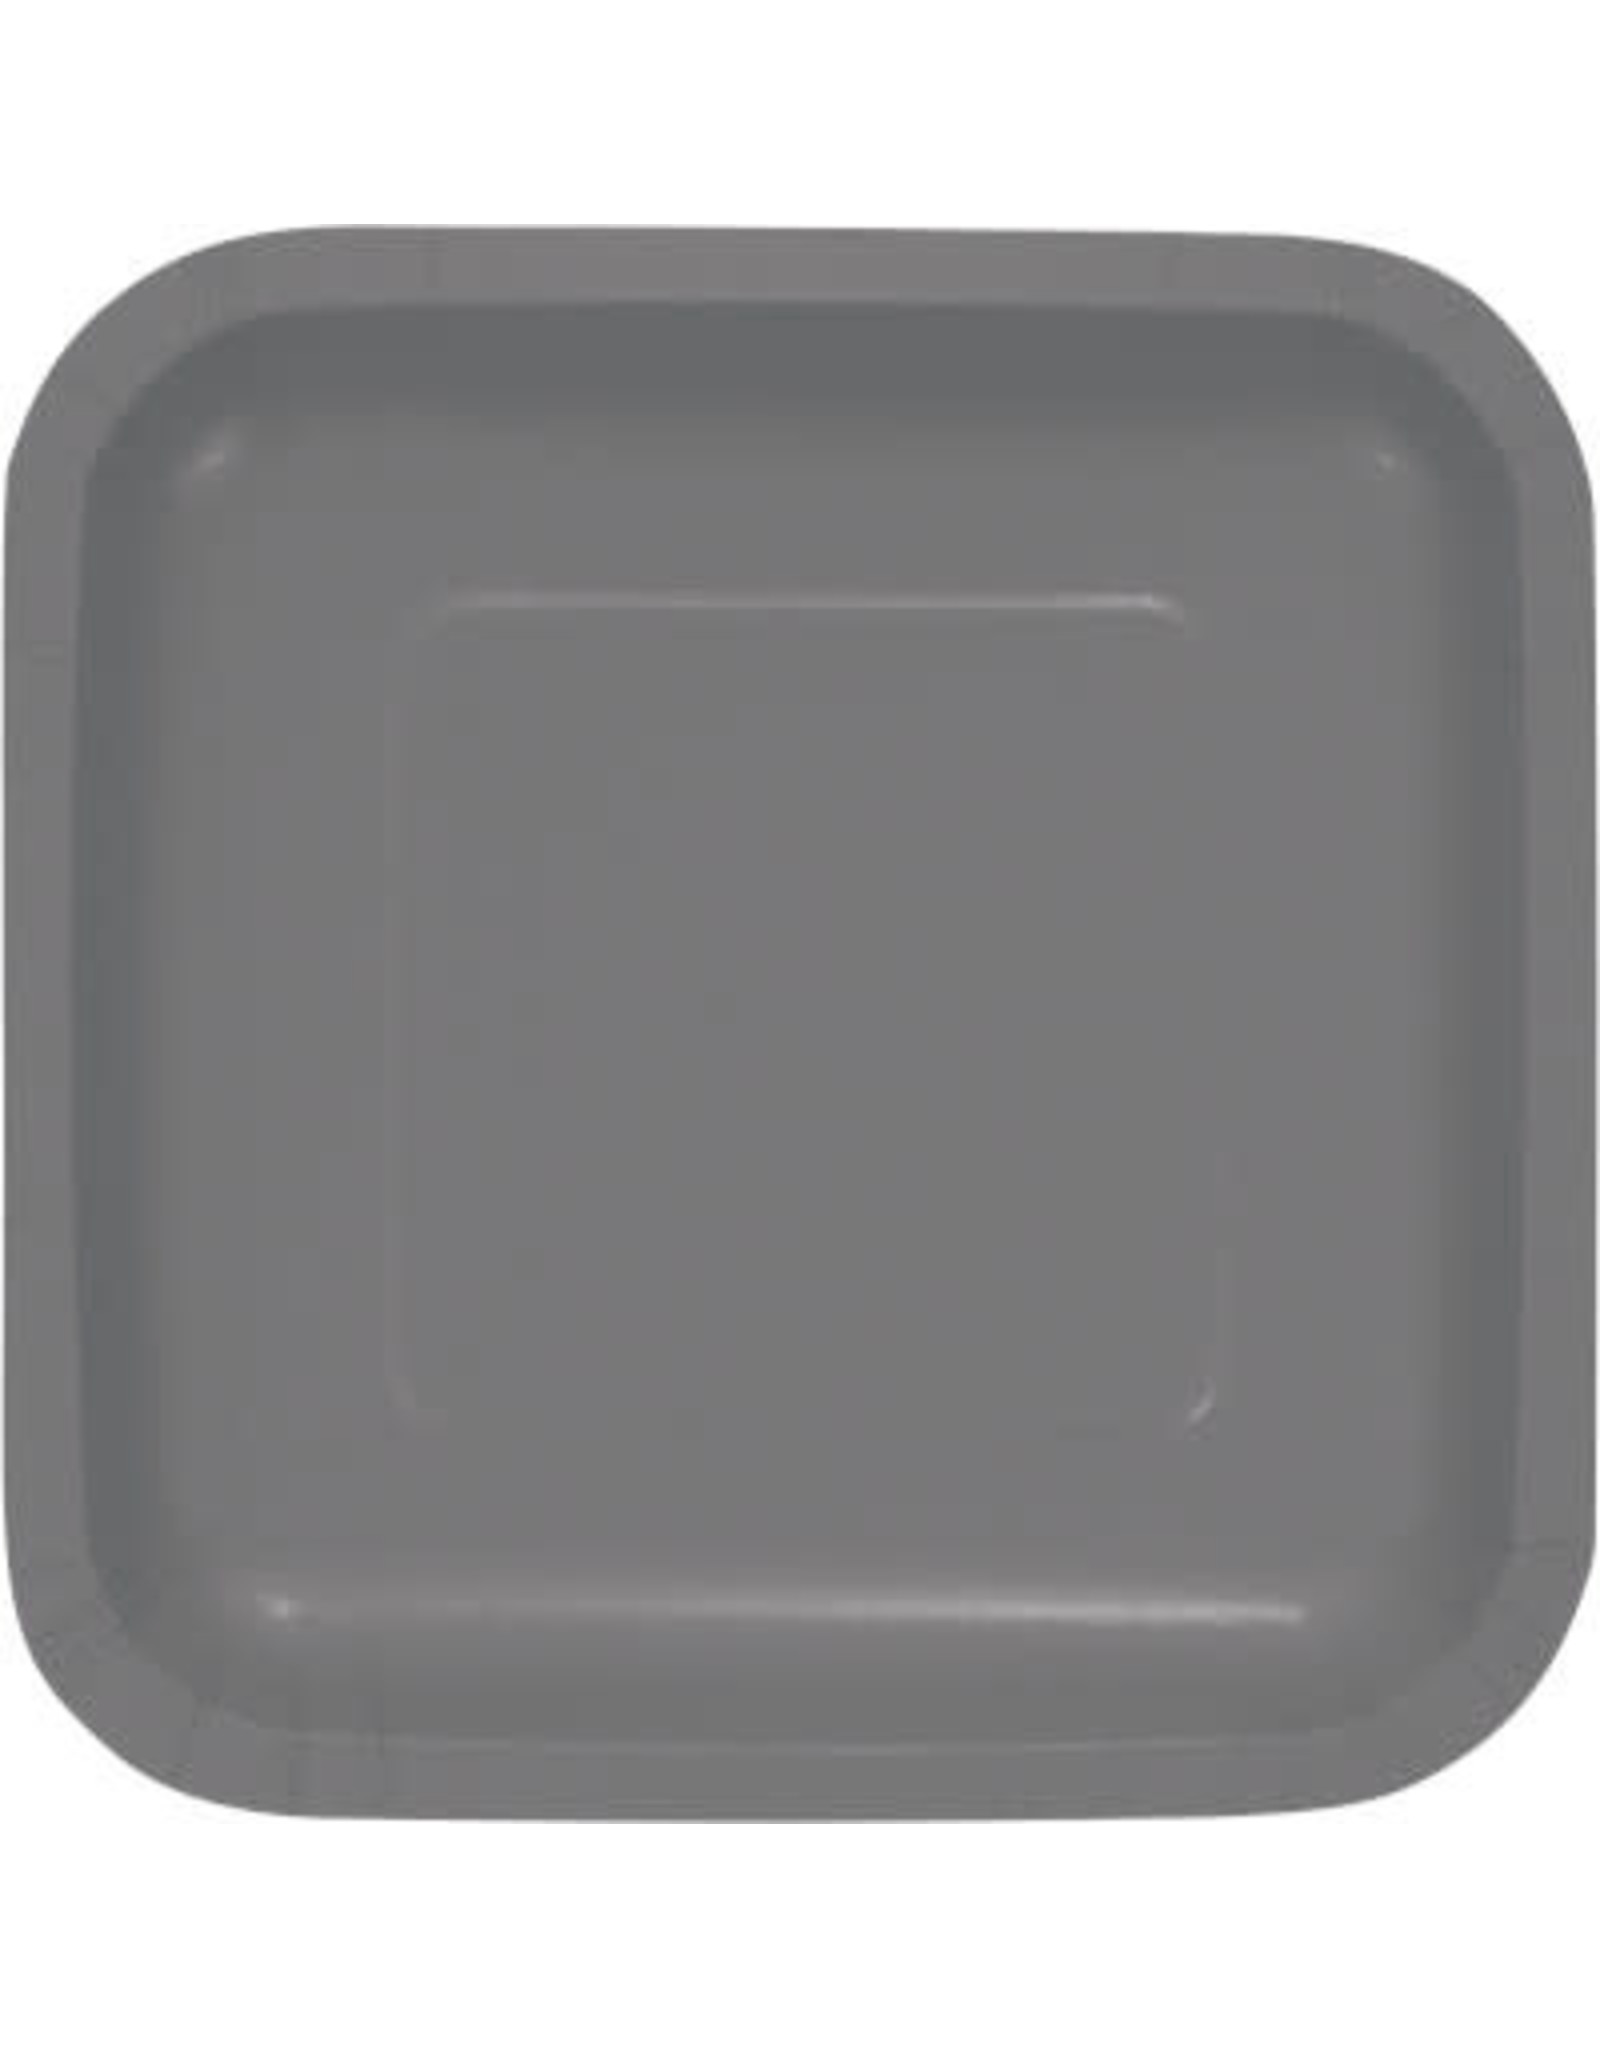 Touch of Color GLAMOUR GRAY SQUARE DESSERT PLATES